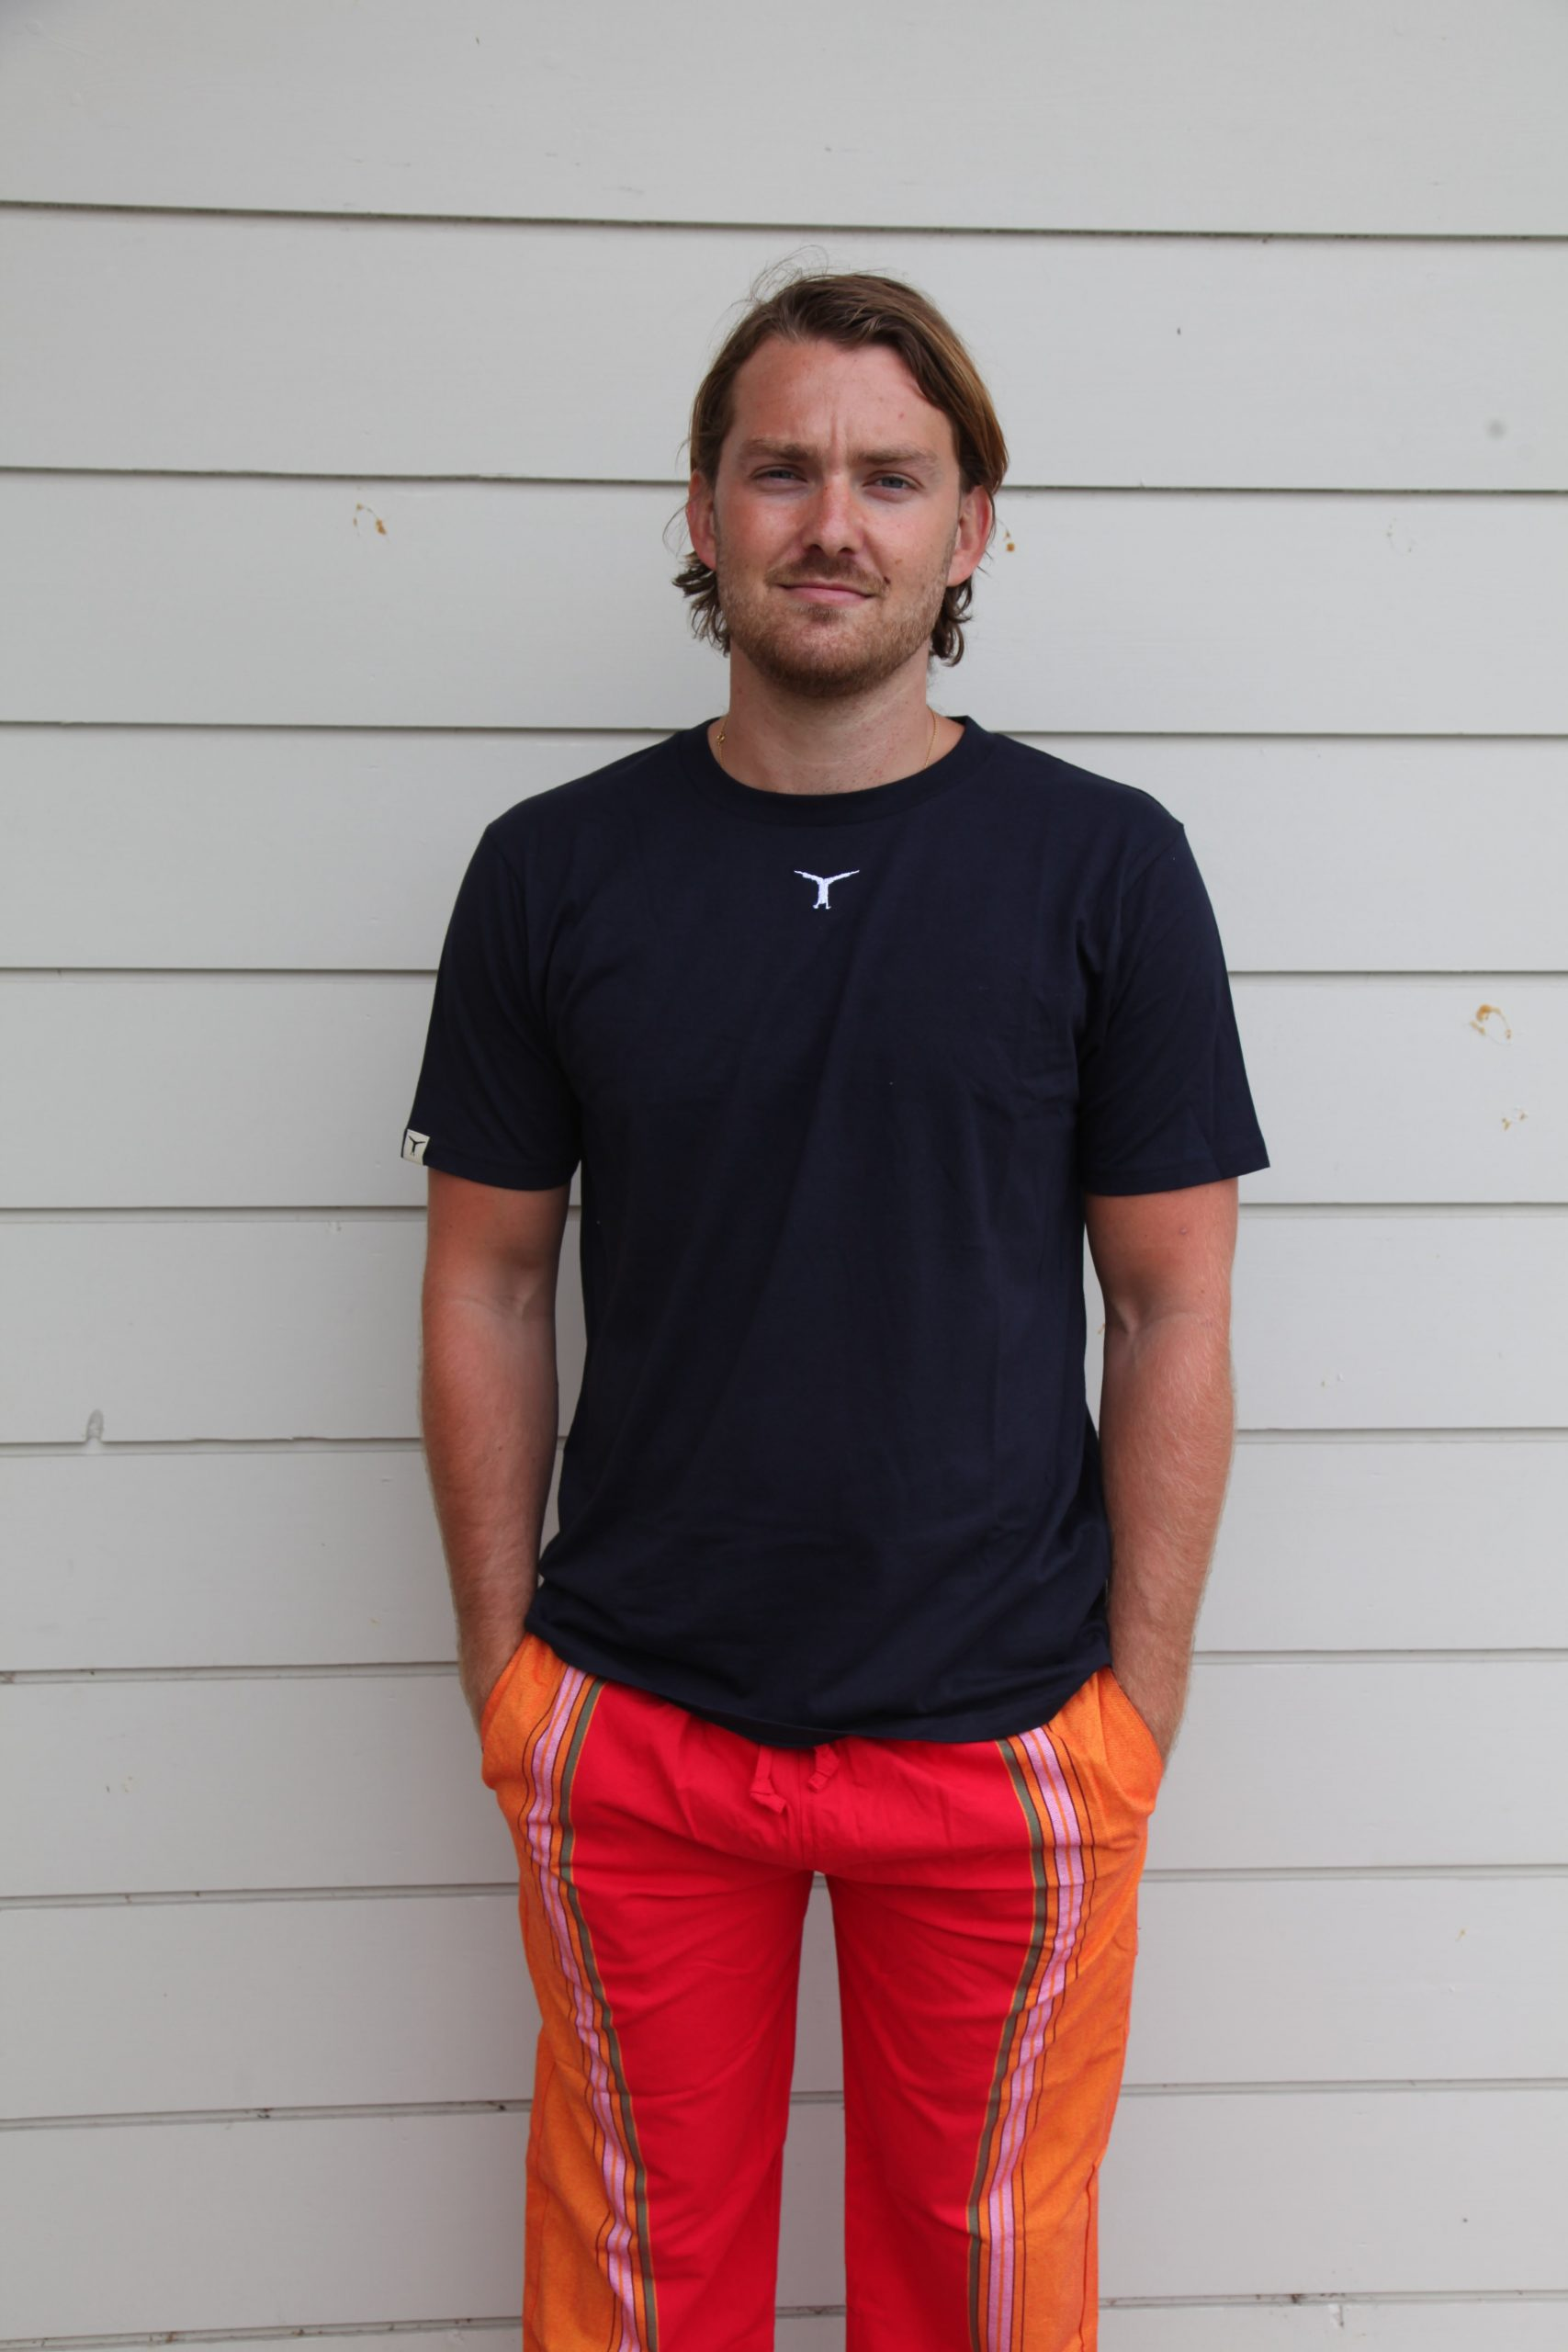 Man standing in front of a wall wearing a black t-shirt and sustainable red and orange kikoy pants